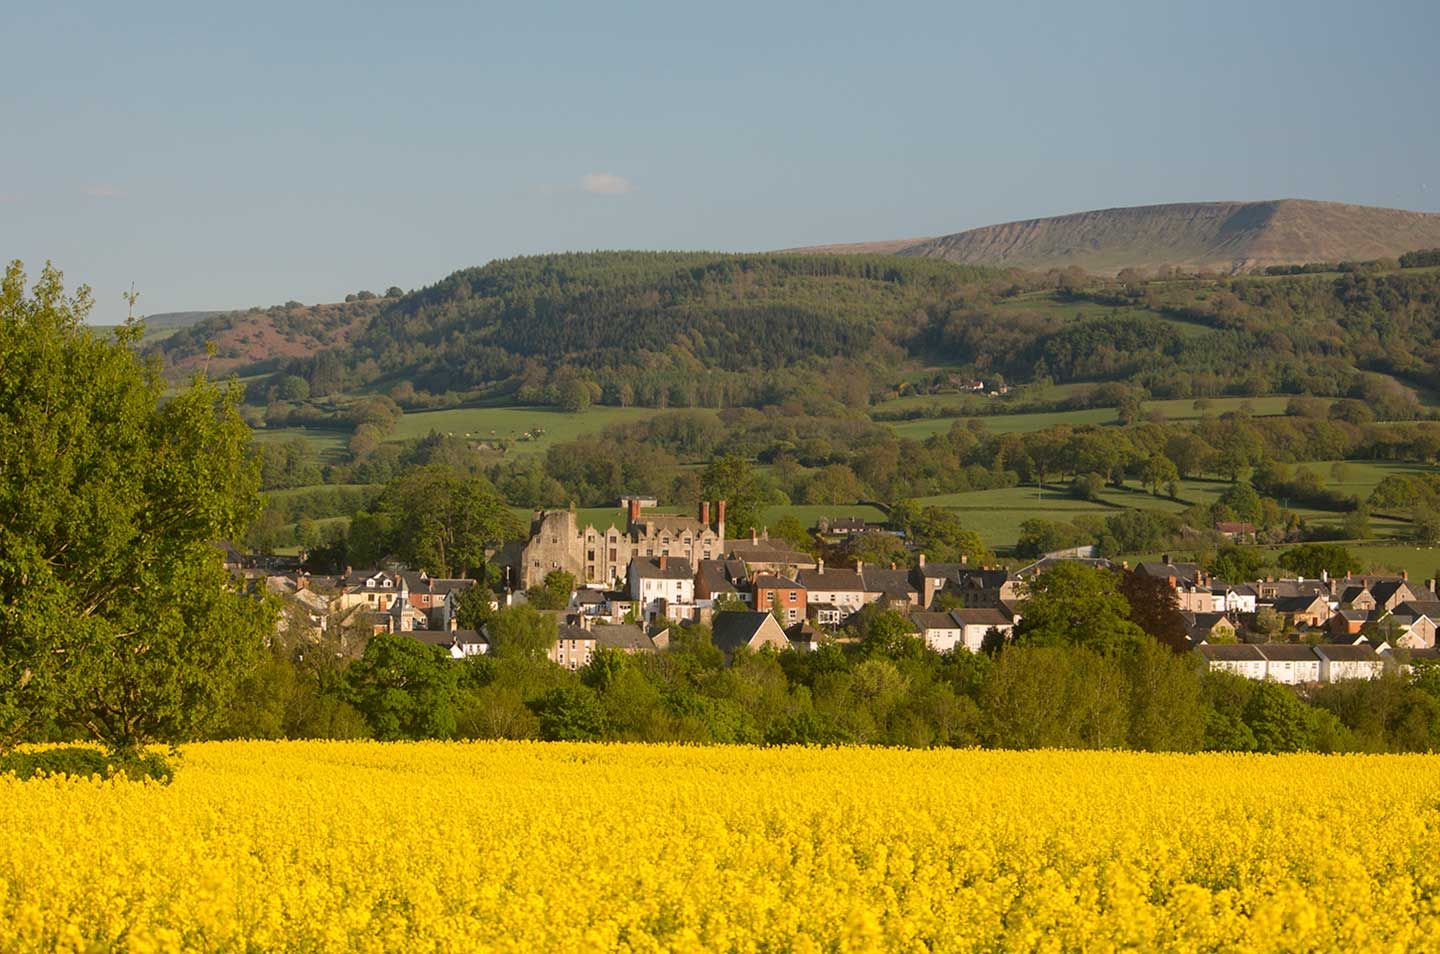 Image of the book town of Hay-on-Wye, Wales